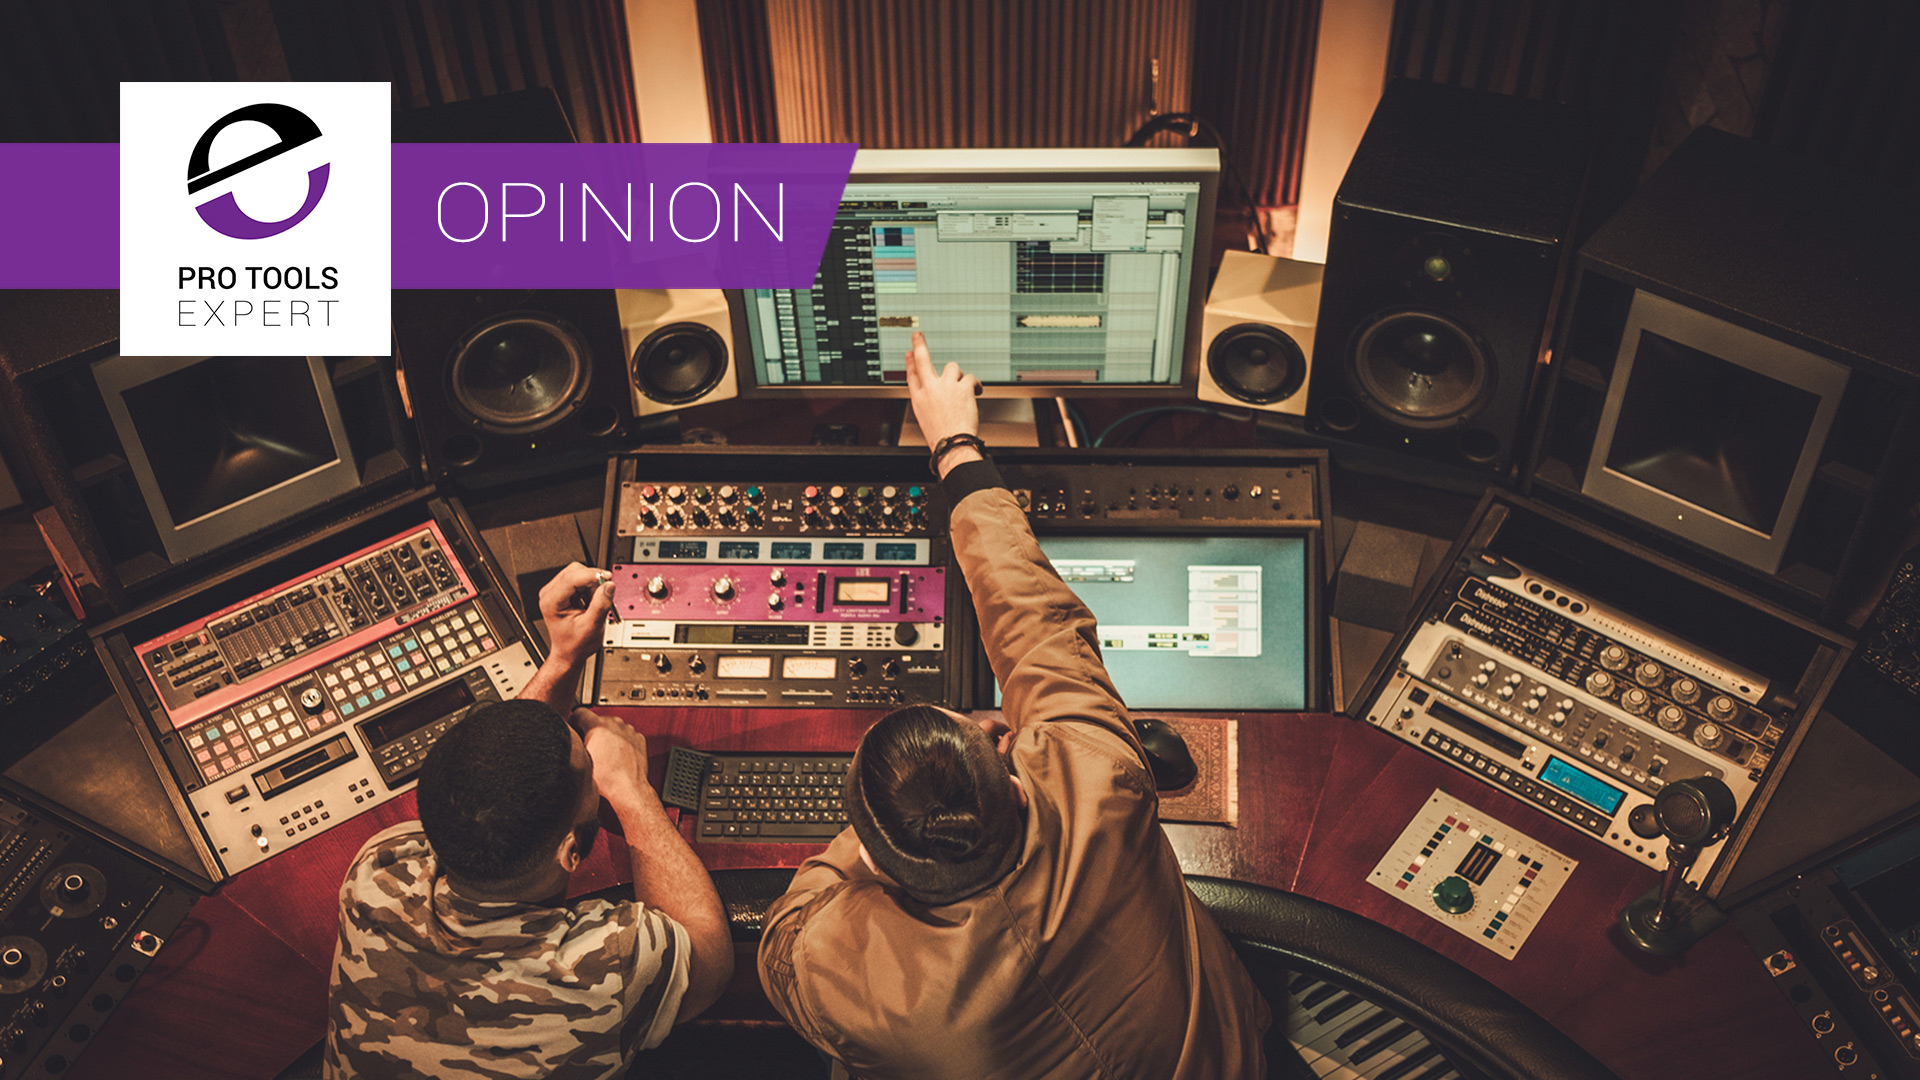 Why-No-One-Should-Choose-Pro-Tools-As-The-Single-Solution-For-Their-Music-Studio.jpg